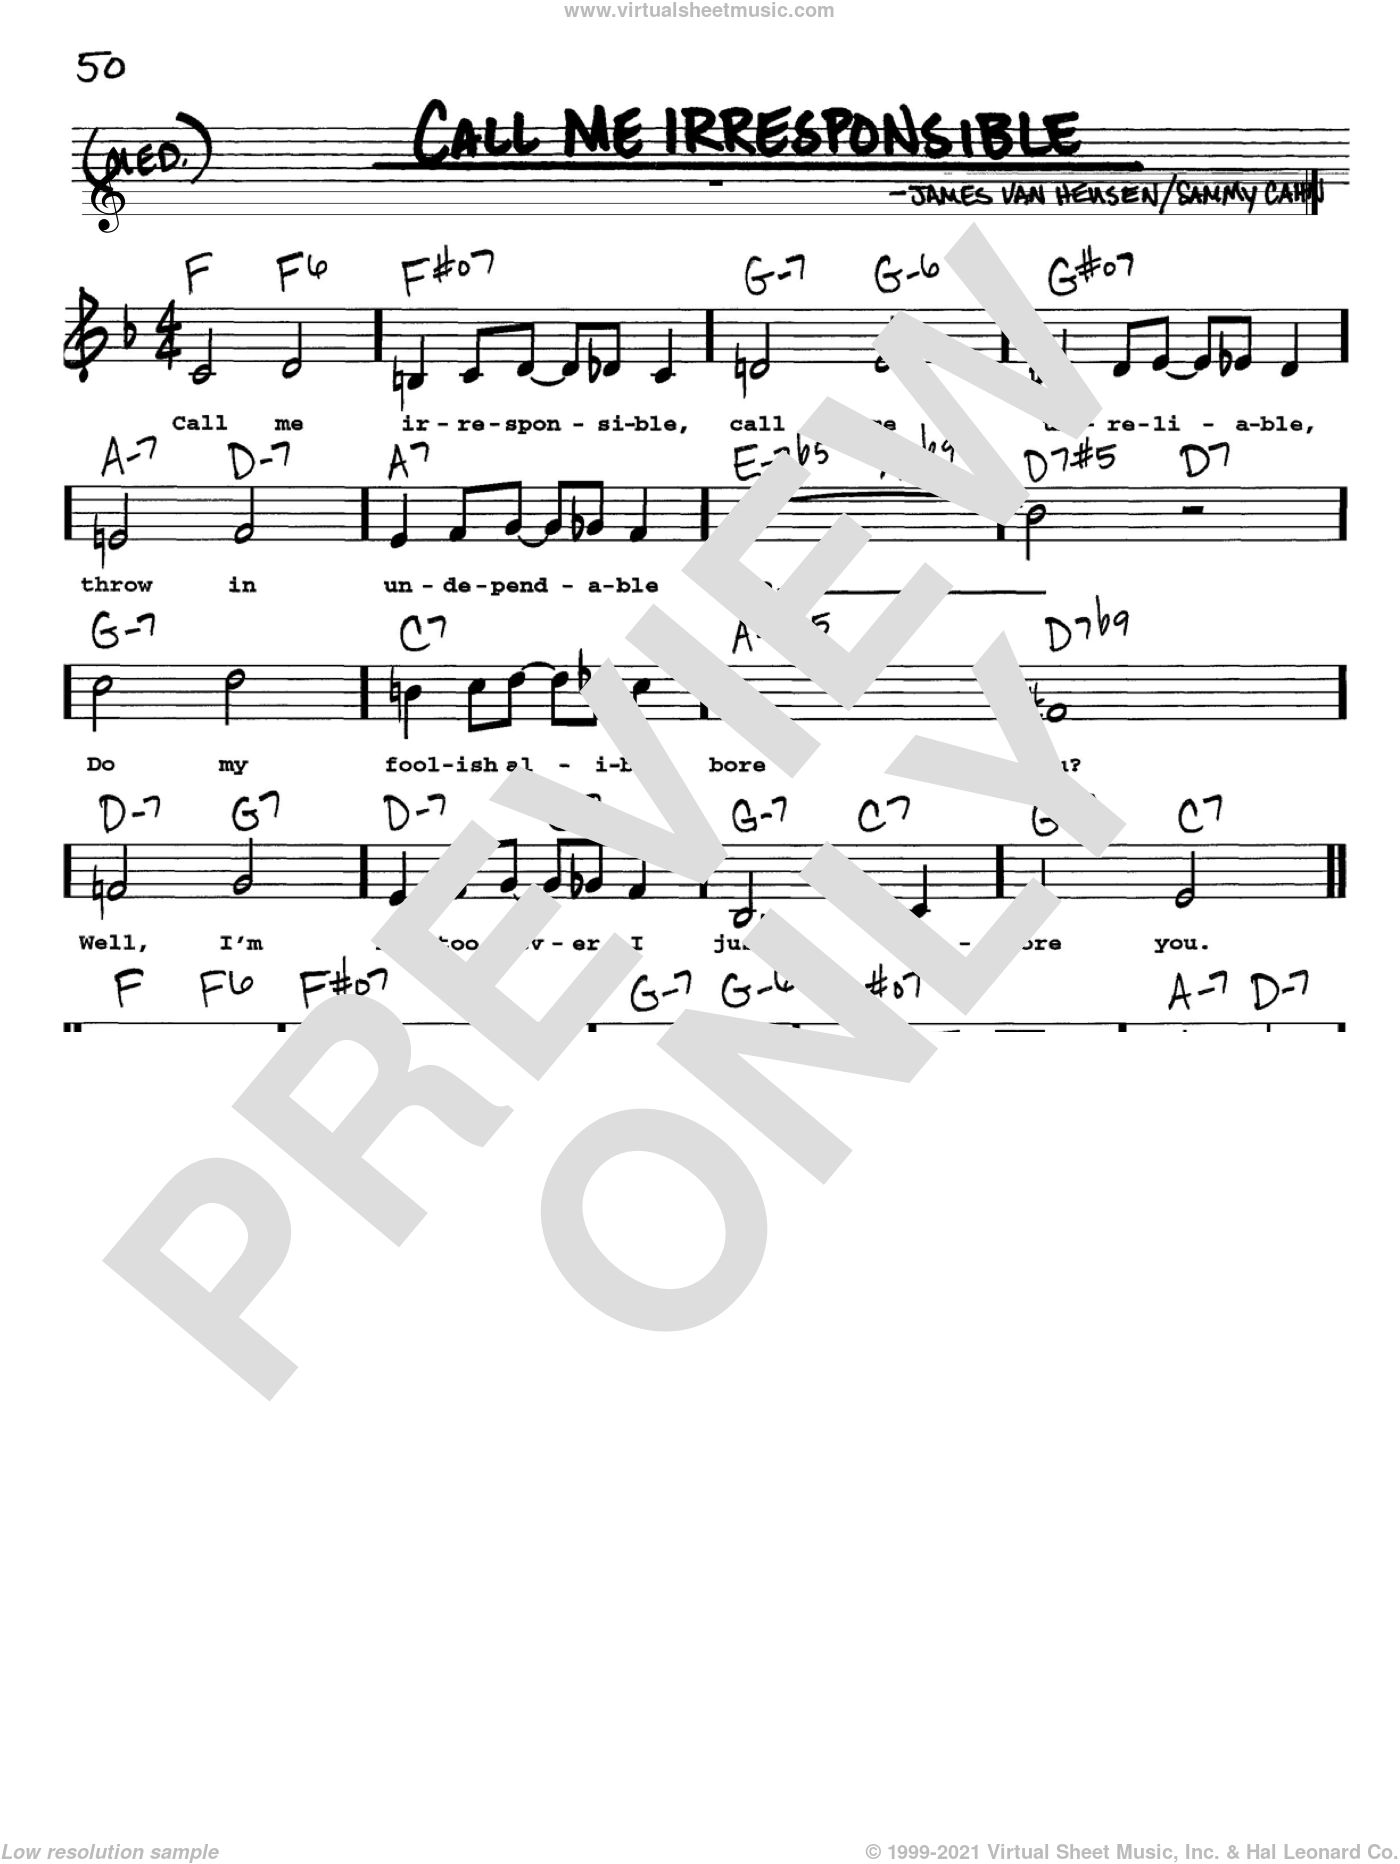 Call Me Irresponsible sheet music for voice and other instruments (Vocal Volume 1) by Frank Sinatra, Dinah Washington, Jack Jones, Jimmy van Heusen and Sammy Cahn. Score Image Preview.